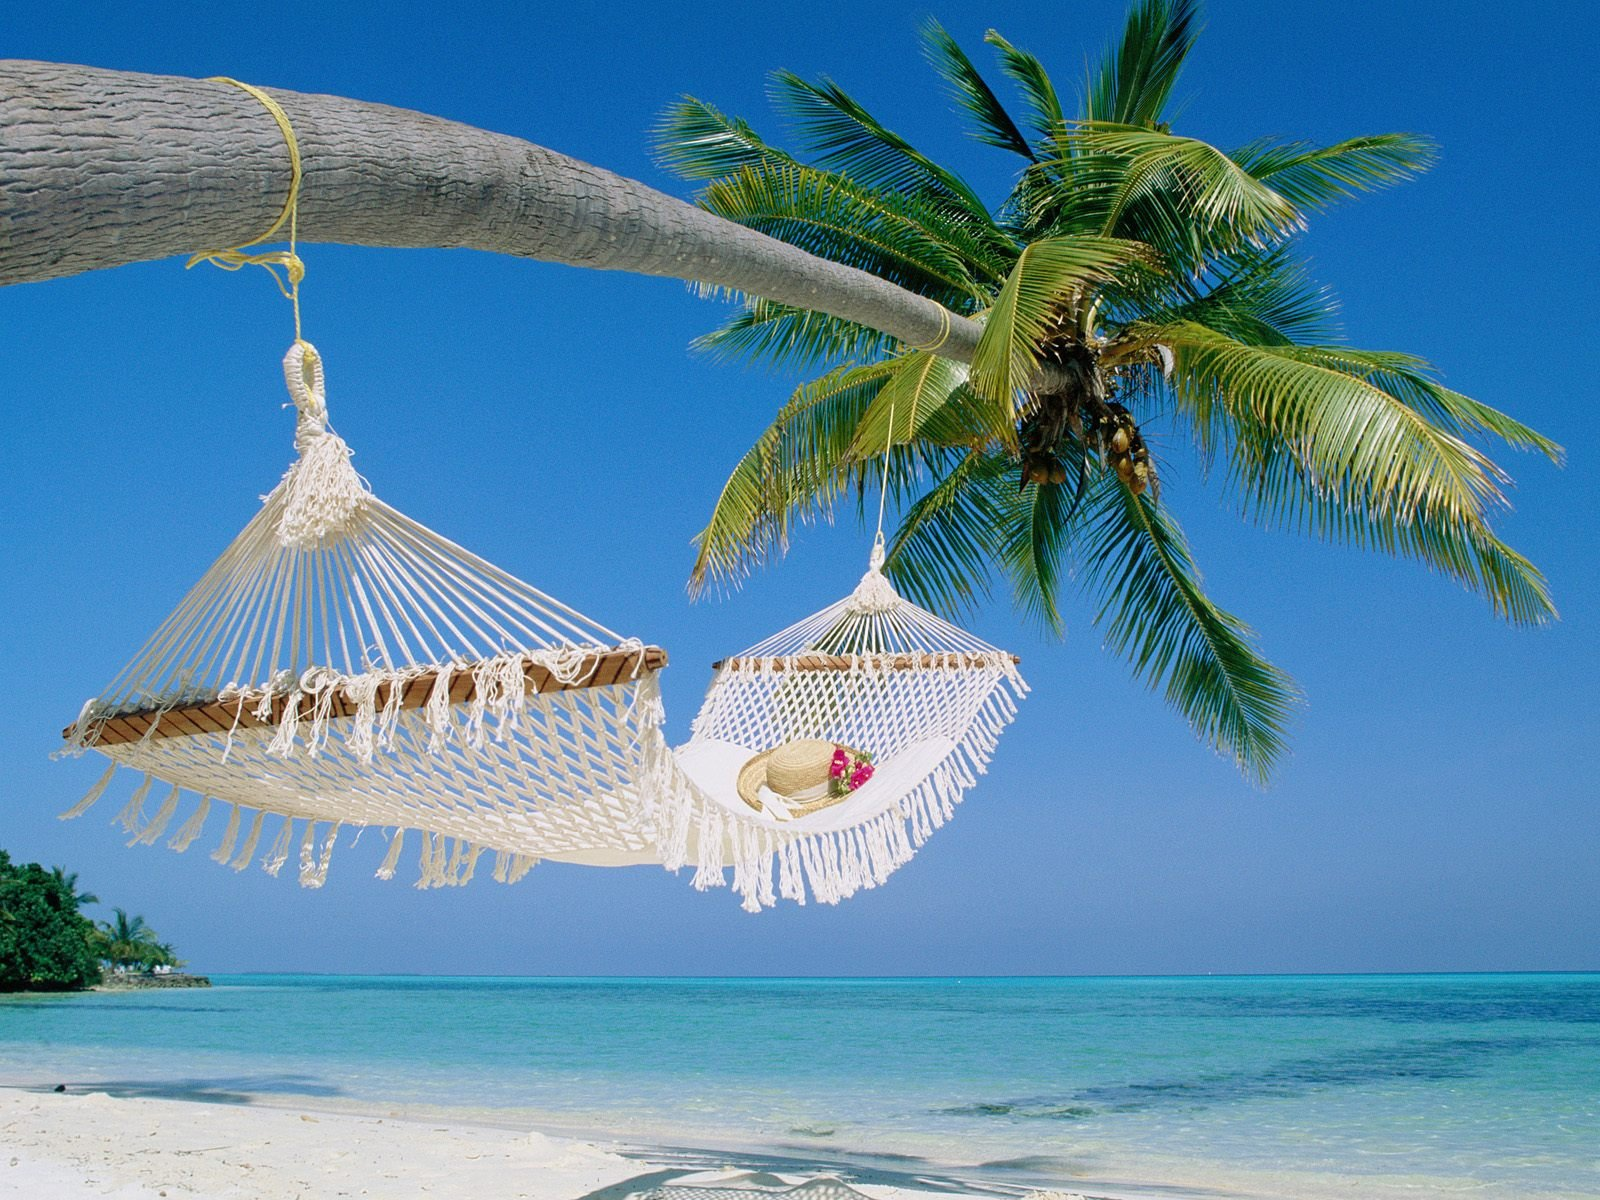 It About Boating Chill Out   A Tropical Island Paradise Beckons 1600x1200